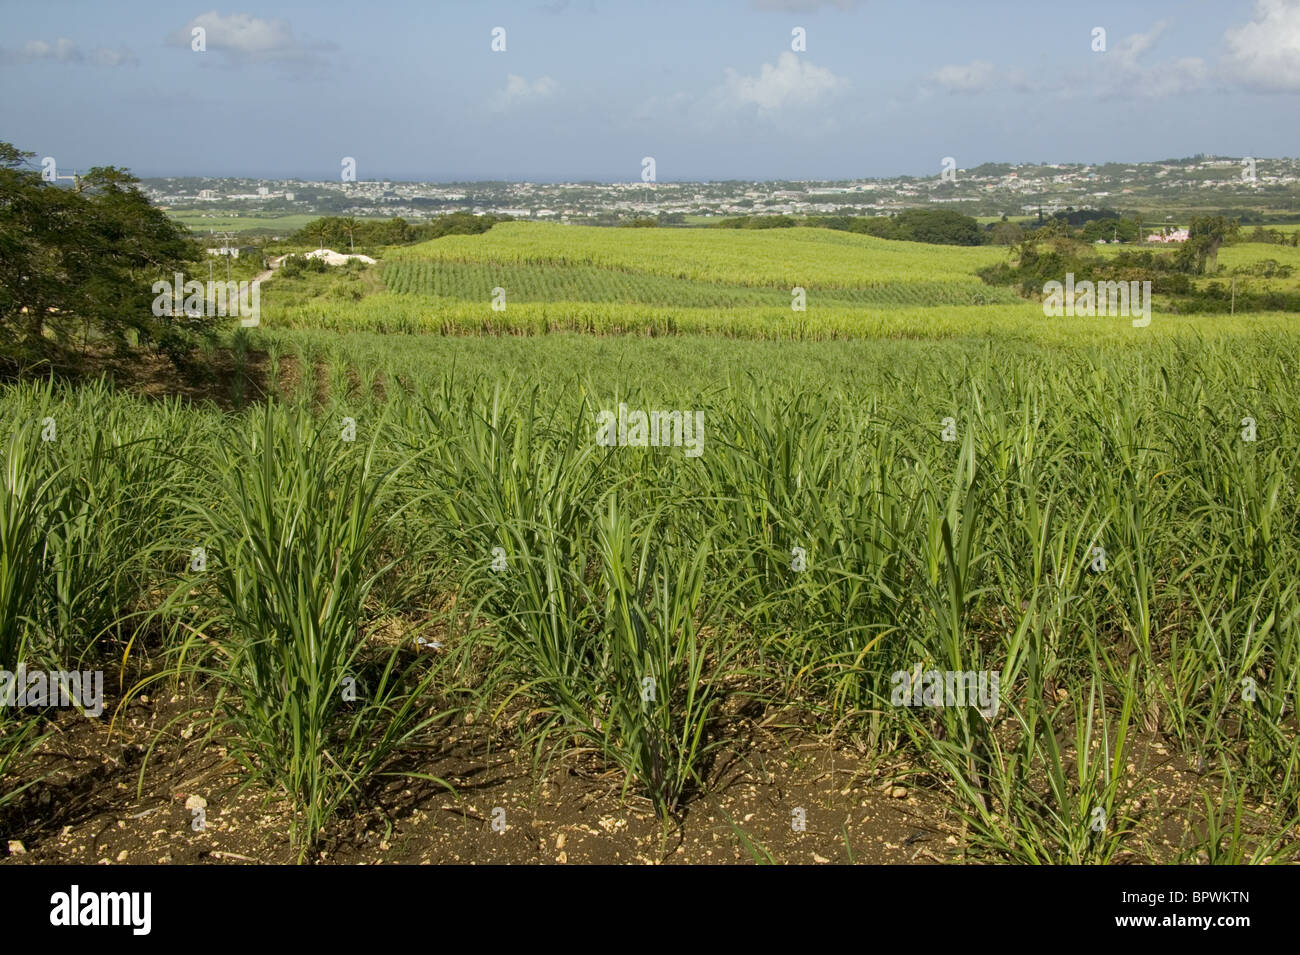 Detail of fields of sugar cane growing in St George Valley in Barbados in the Caribbean Islands - Stock Image